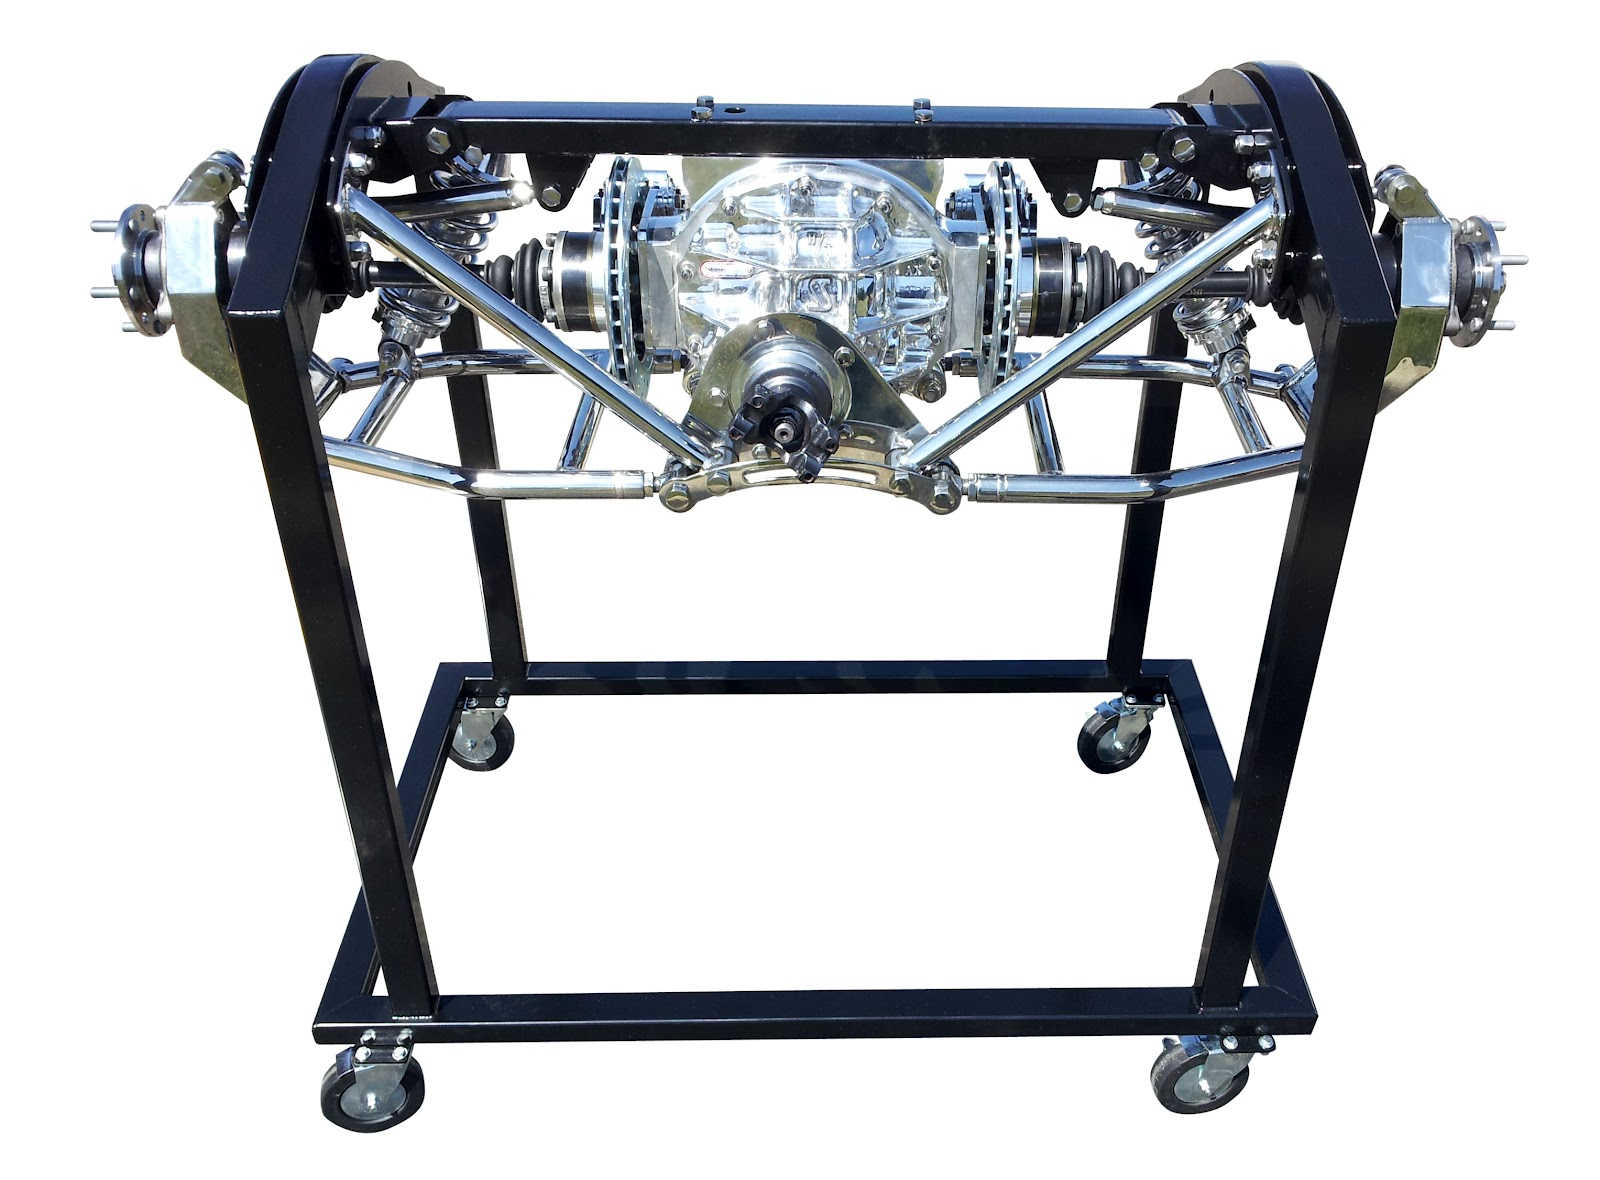 school of hot rod heidts unveils new tri five pro g independent rear suspension for 1955 to. Black Bedroom Furniture Sets. Home Design Ideas